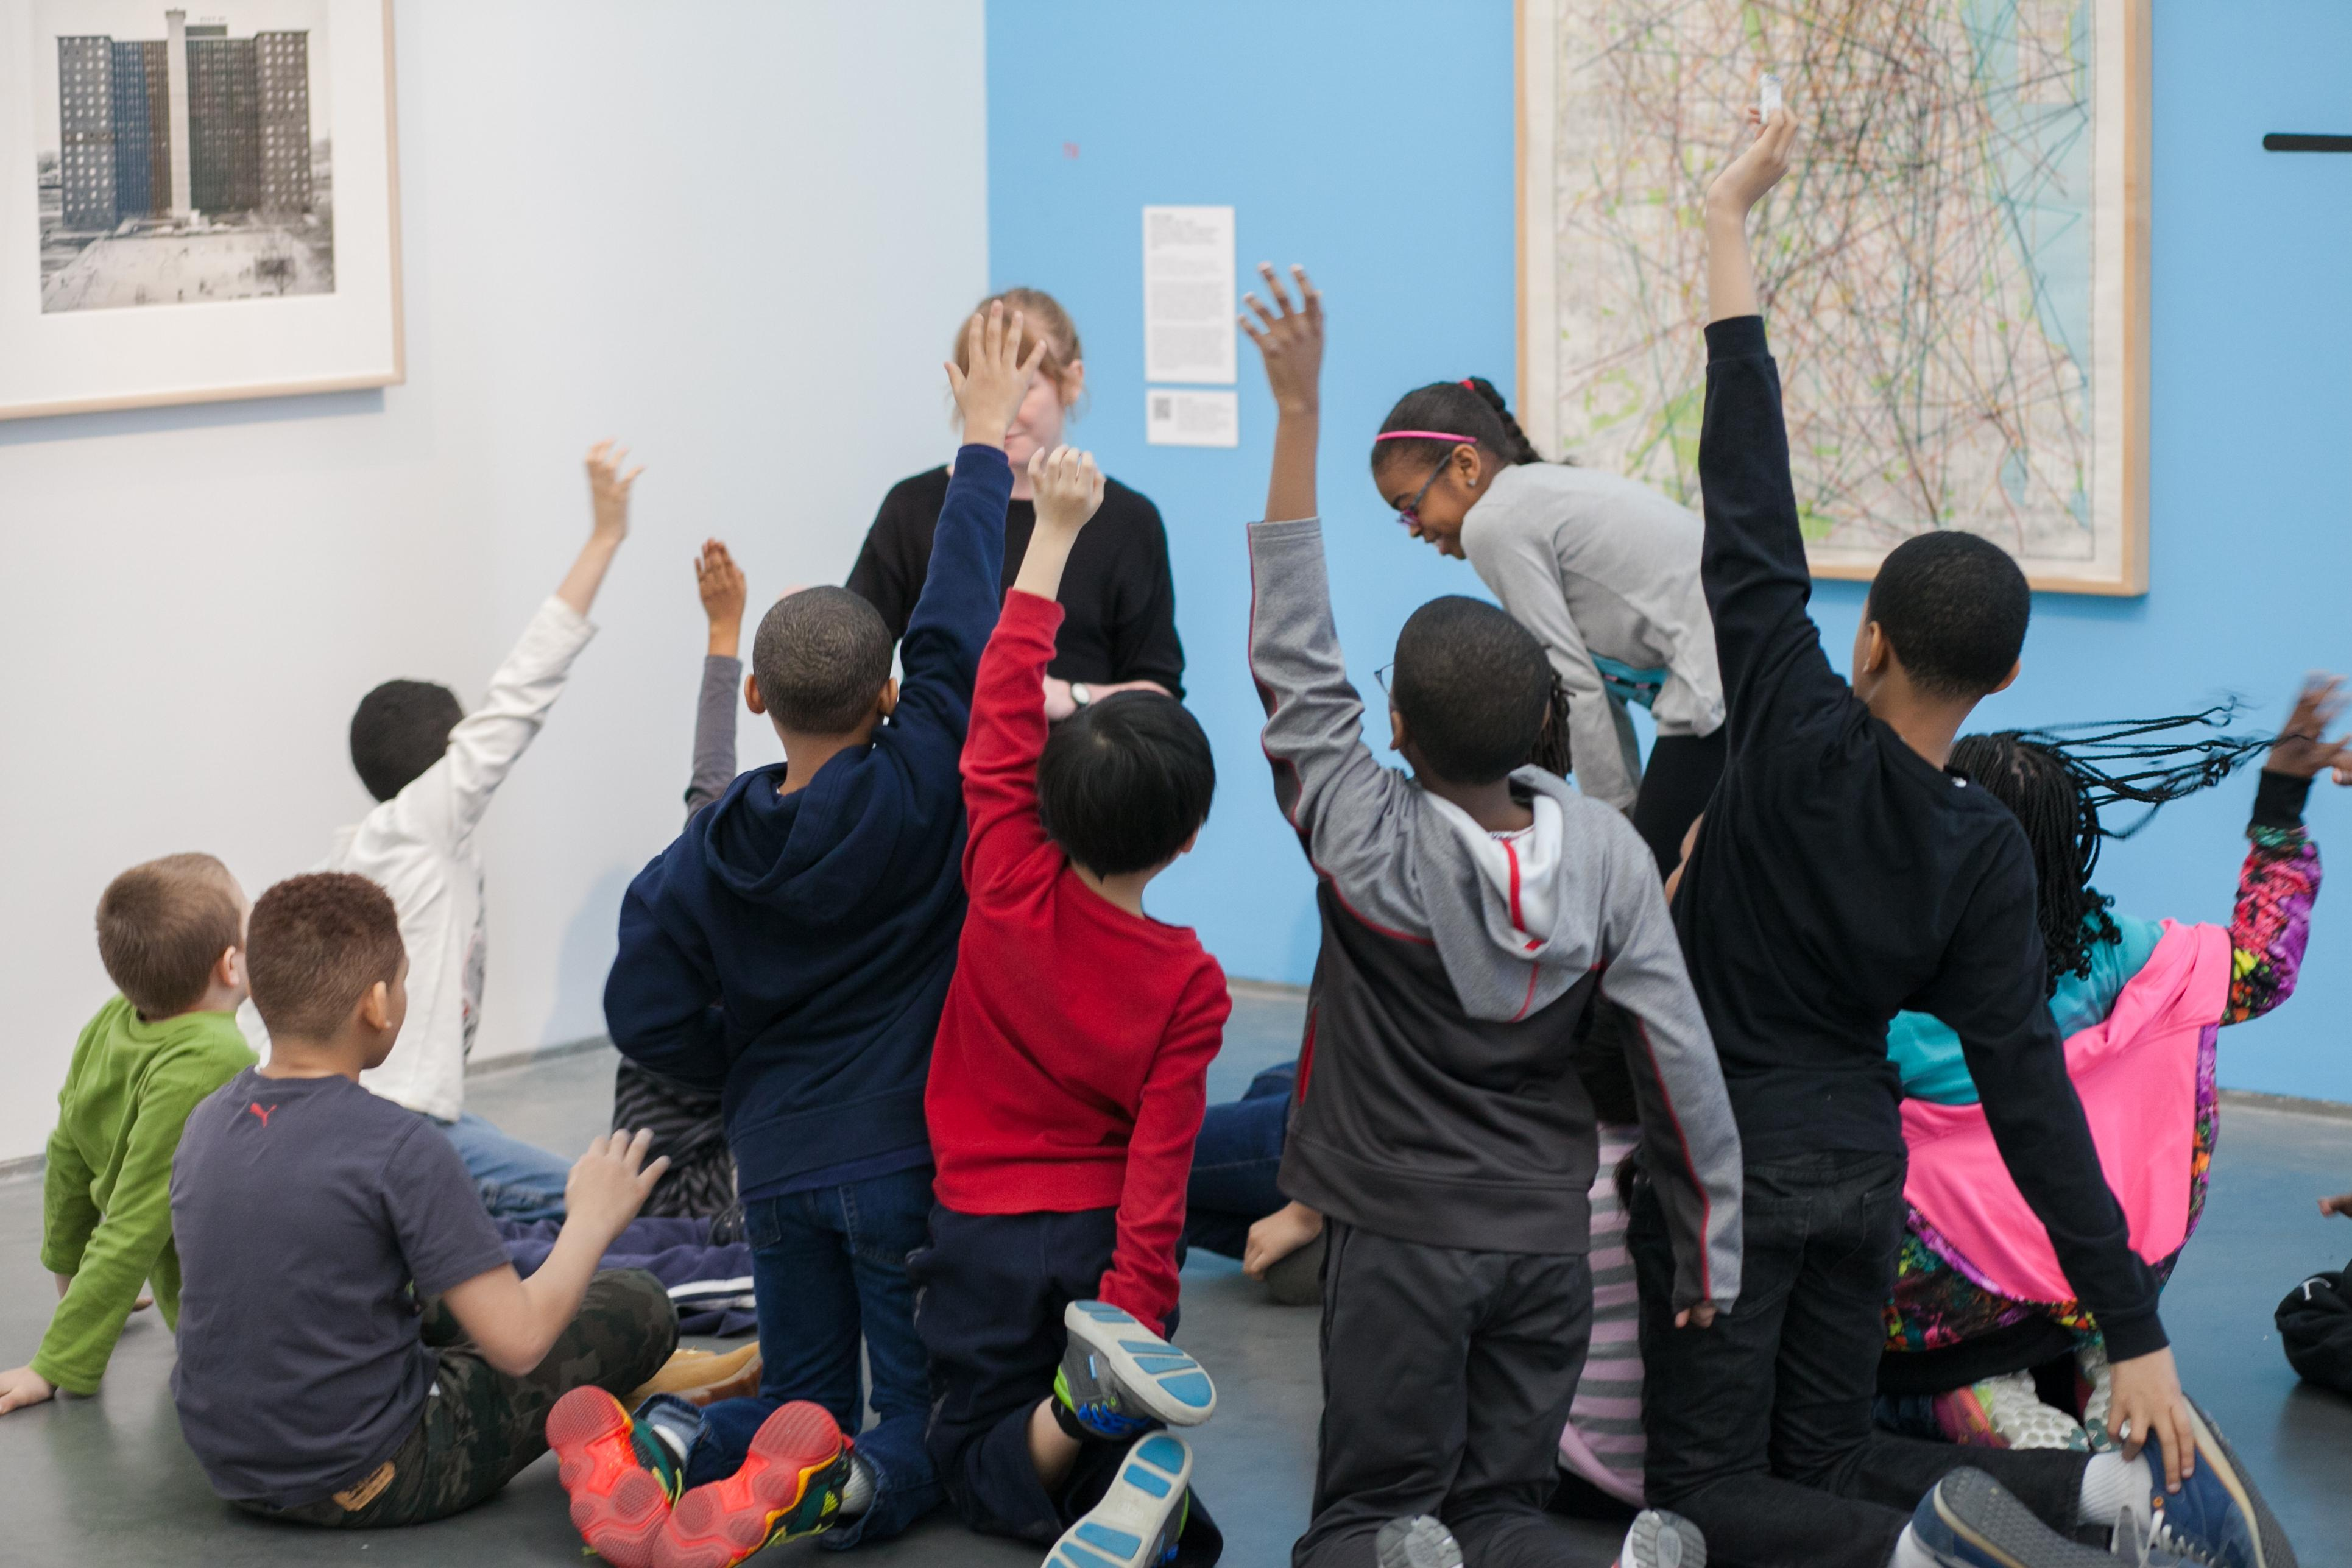 Children and artist guide in MCA gallery with art